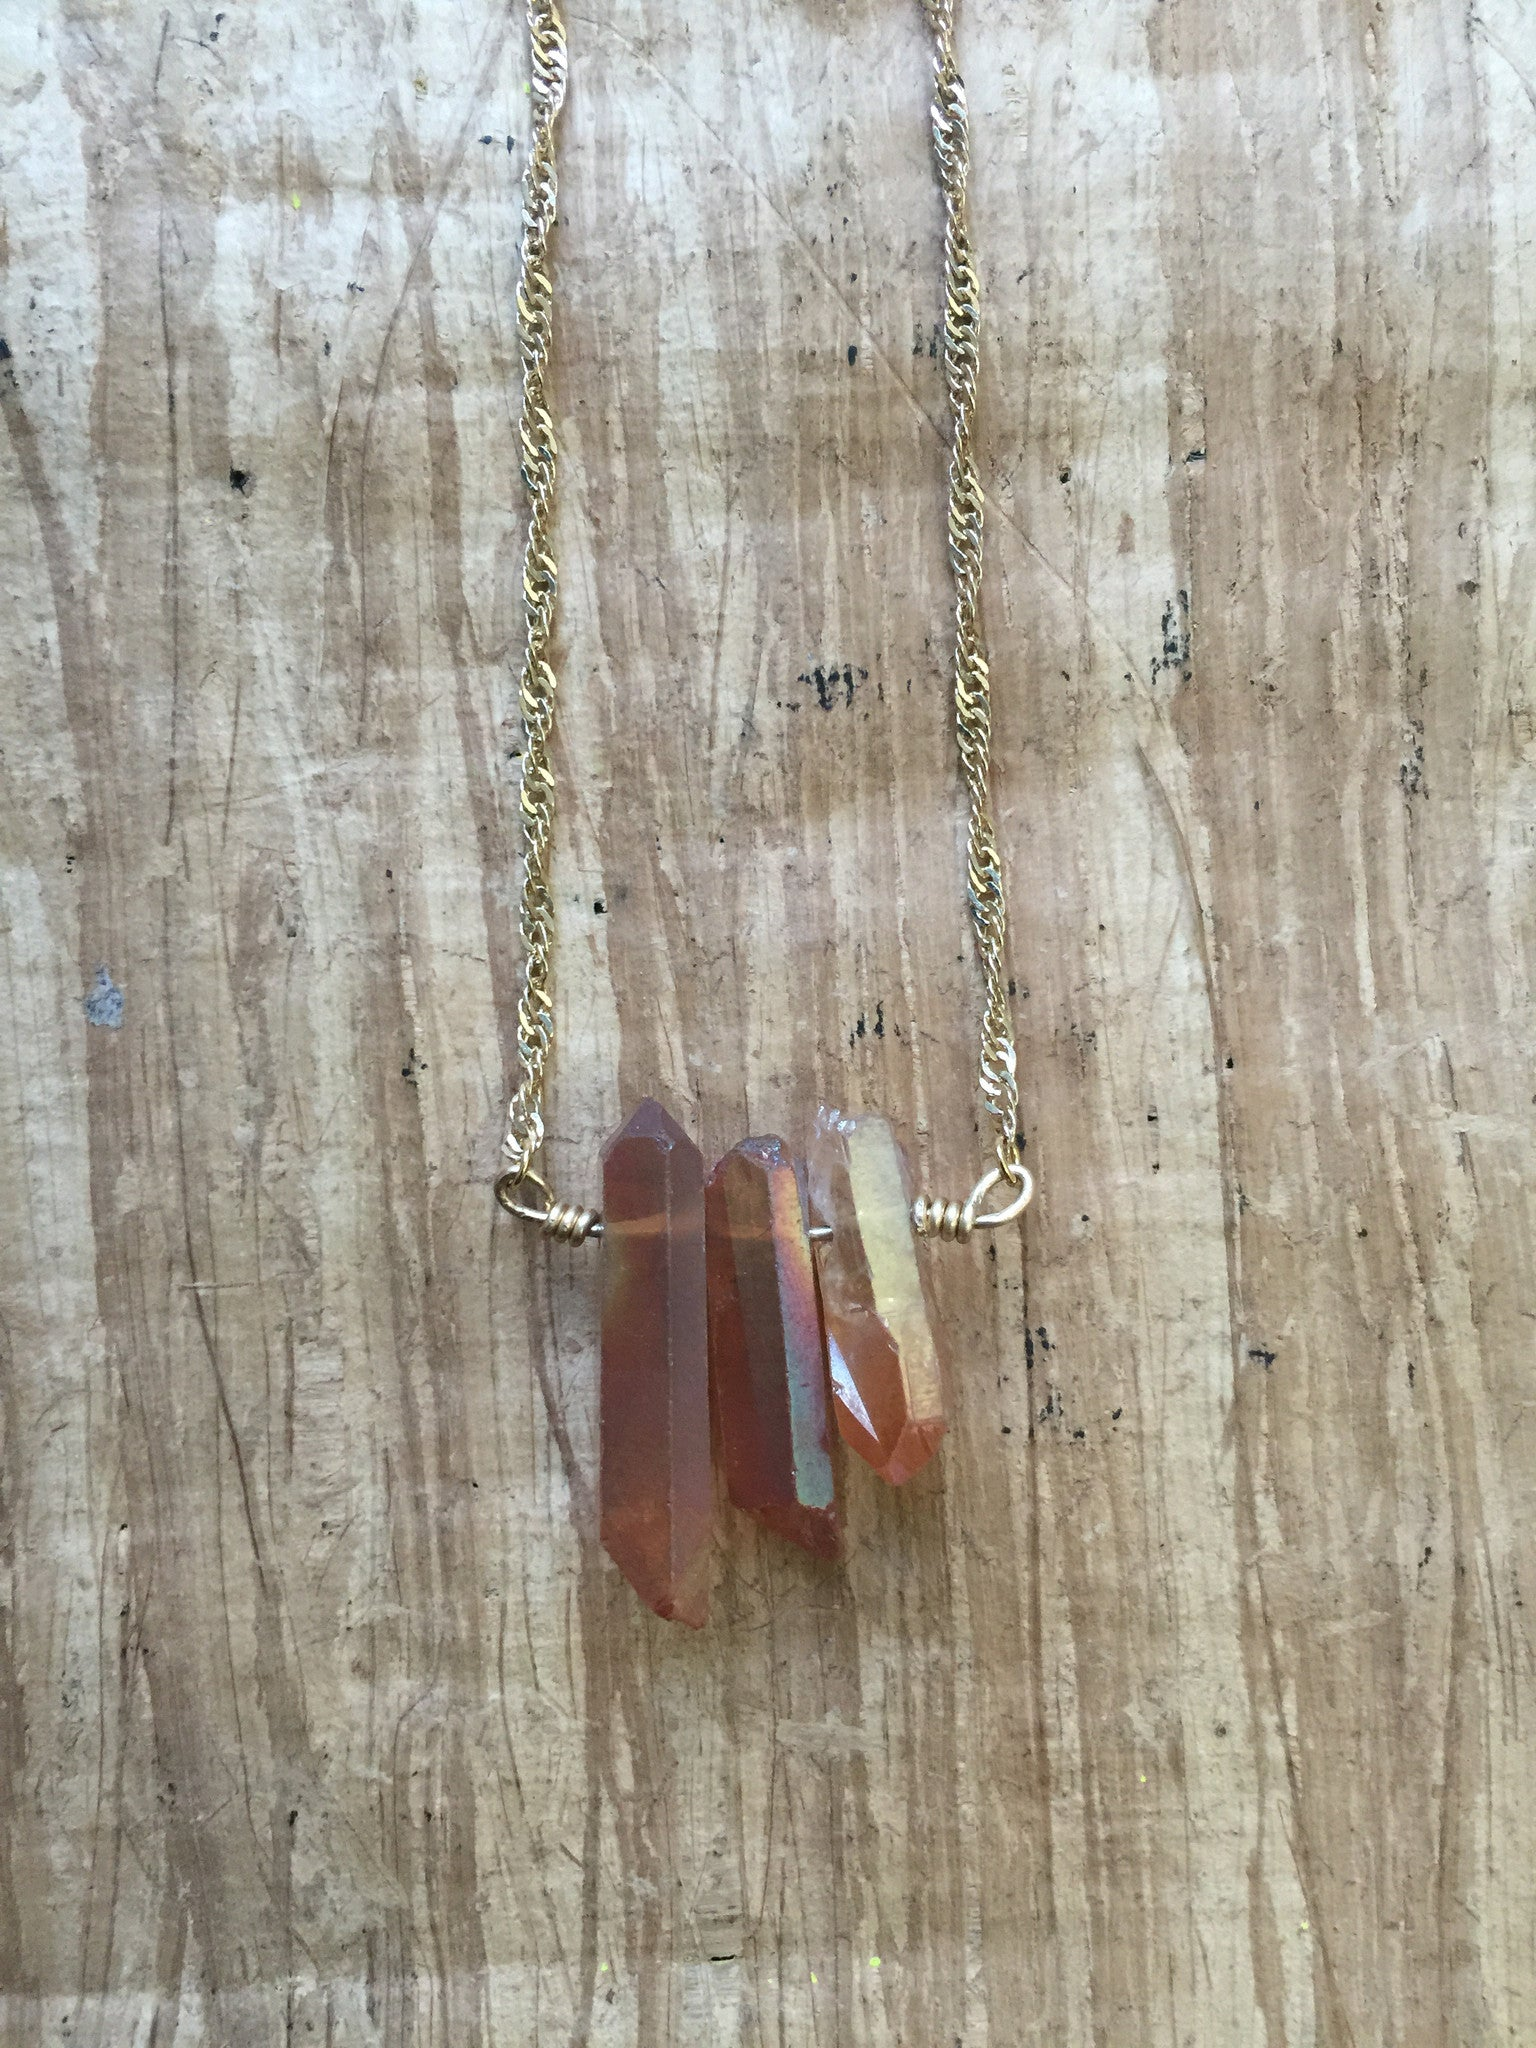 Triple Sunshine Aura Quartz Necklace - Ultraviolet   - 4